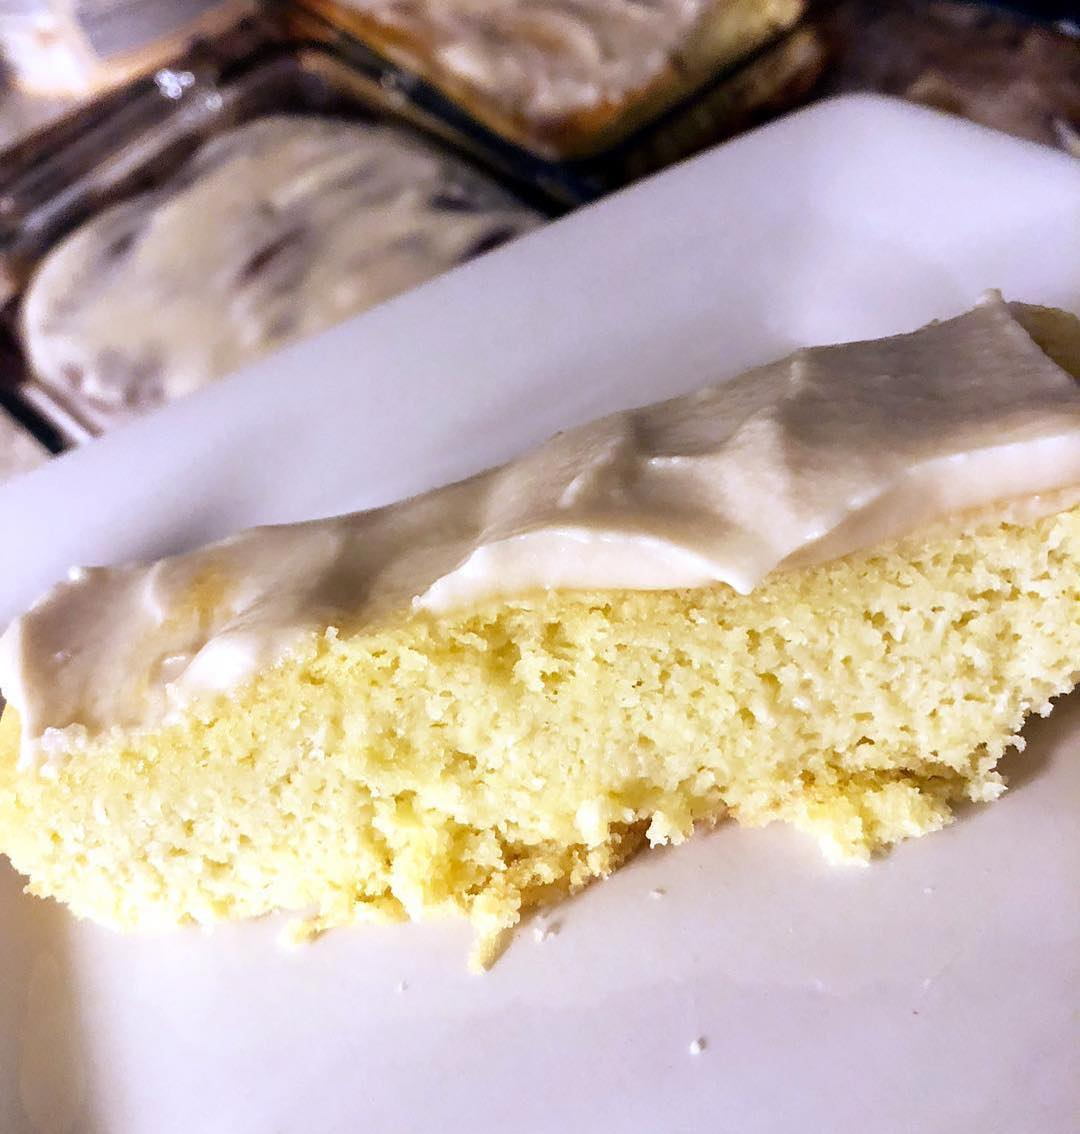 Keto Lemon Pound Cake, Oh my!!! Gonna try this recipe ASAP!! — Repost @the_modified_mama ・・・ Guys this cake!!!! Keto Lemon pound cake —- This makes a total of 16 servings of pound cake. Each slice comes out to be 254.19 Calories, 23.4g Fats, 2.49g Net Carbs, and 7.9g Protein.  Don't be afraid to half the recipe (it makes a lot) or cook in smaller pans and freeze some (just watch cook times). Don't like lemon, just use vanilla, or almond extract. It comes out JUST like pound cake!!! Pound cake  2 ½ cups almond flour ½ cup unsalted butter, softened 1 ½ cups erythritol 8 whole eggs, room temperature 1 ½ teaspoons vanilla extract ½ teaspoon lemon extract ½ teaspoon salt 8 ounces cream cheese 1 ½ teaspoons baking powder — Glaze – ¼ cup powdered erythritol 3 tablespoons heavy whipping cream ½ teaspoon vanilla extract — 1. Preheat oven to 350°F. Toss in room temperature butter, softened cream cheese, and erythritol into a mixing bowl. 2. Cream together the butter and erythritol until smooth. Then, add in softened chunks of cream cheese and blend together until smooth 3. Add in the eggs, lemon extract,and vanilla extract in with the blended ingredients. Blend with a hand mixer until smooth. 4. In a medium sized bowl: mix together the almond flour, baking powder, and salt. 5. Slowly add in the ingredients from the medium sized bowl into the batter. Use a hand blender to blend the clumps until very smooth. 6. Pour batter into a loaf pan.  Bake for 60 – 120 minutes at 350F or until smooth in the middle when tested with a toothpick.  If creating a glaze: blend together the powdered erythritol, vanilla extract, and heavy whipping cream until smooth. Wait until the pound cake is fully cooled from the oven before spreading the glaze on top. —